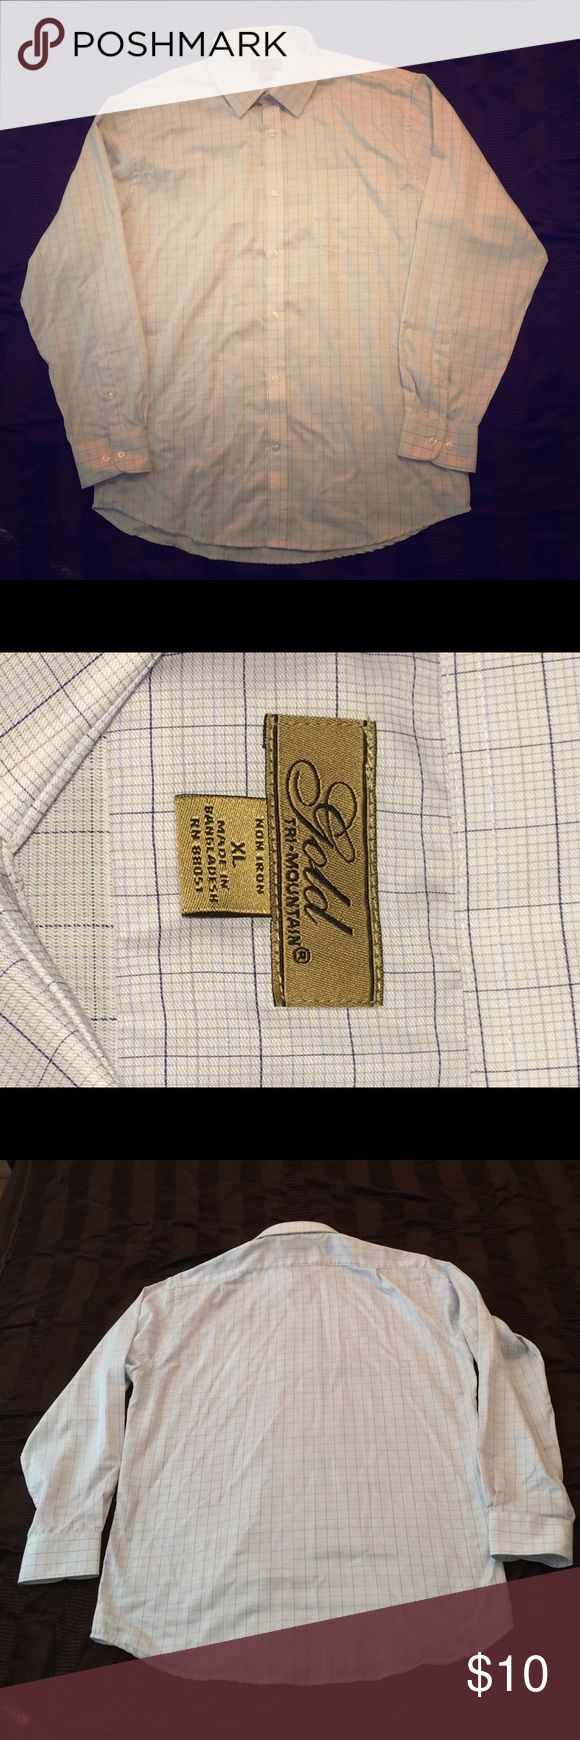 No-Iron Men's Dress Shirt New & never worn!  No ironing required for this long-sleeved men's button-down dress shirt by Gold Tri-Mountain!  White with navy/light blue/light gray square pattern.  Light weight fabric (100% cotton).  Could dress up for work or dress down with a pair of jeans for a casual look. One front pocket. Gold Tri-Mountain Shirts Dress Shirts